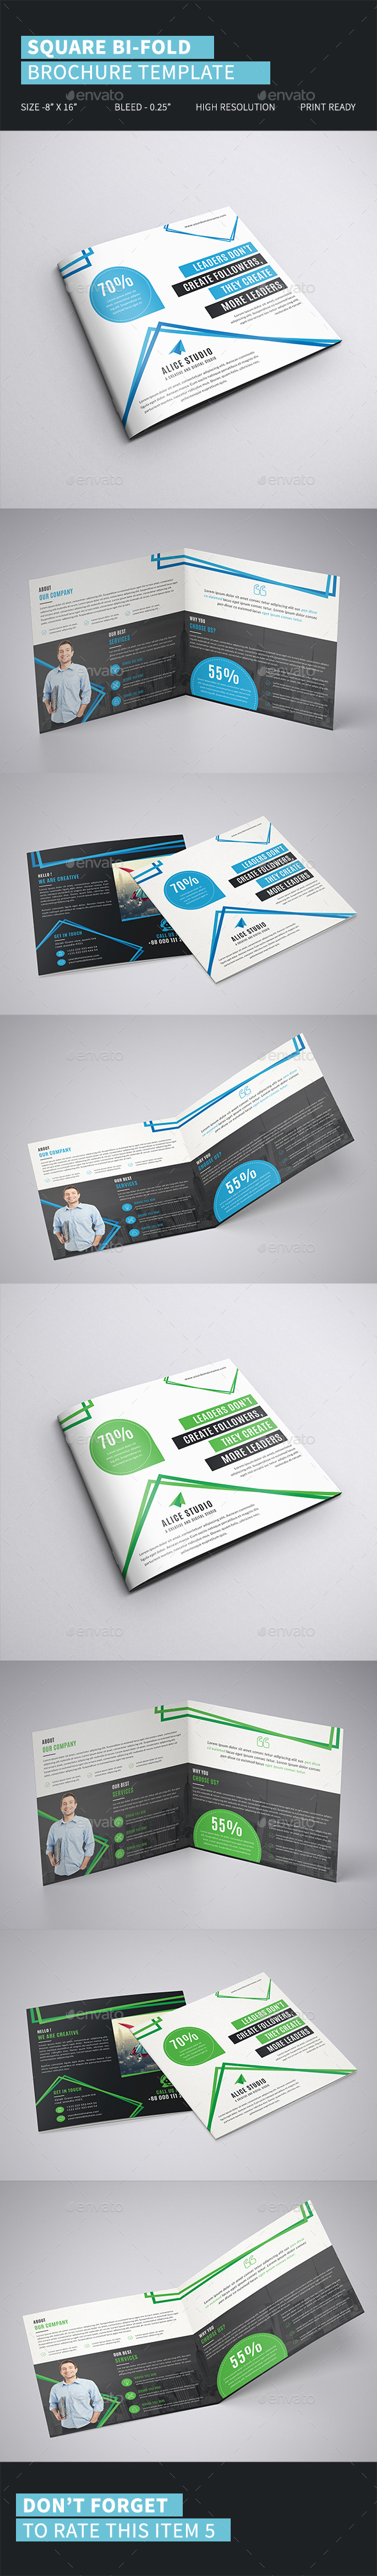 Bi fold brochure template psd for Bi fold brochure template illustrator